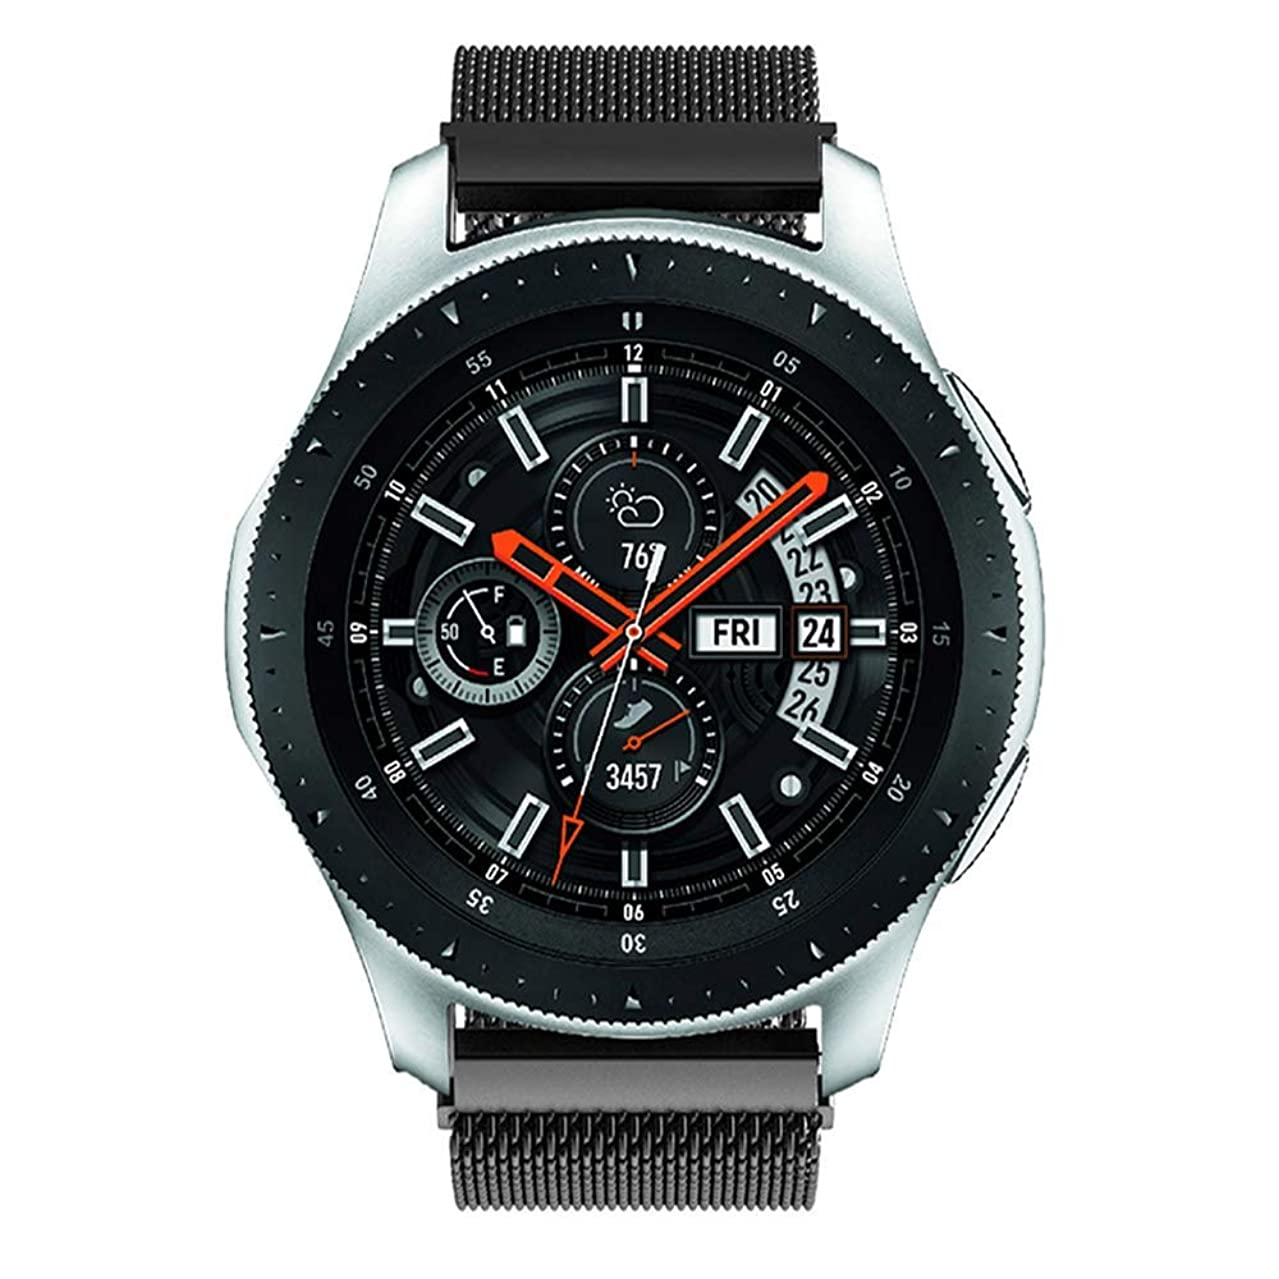 Galaxy Watch 46mm Bands, Gear S3 Bands, Wingle 22mm Universal Replacement Strap w/Quick Release Pin Magnetic Closure Compatible for TicWatch Pro/Huawei Watch GT Classic Smartwatch- Space Black